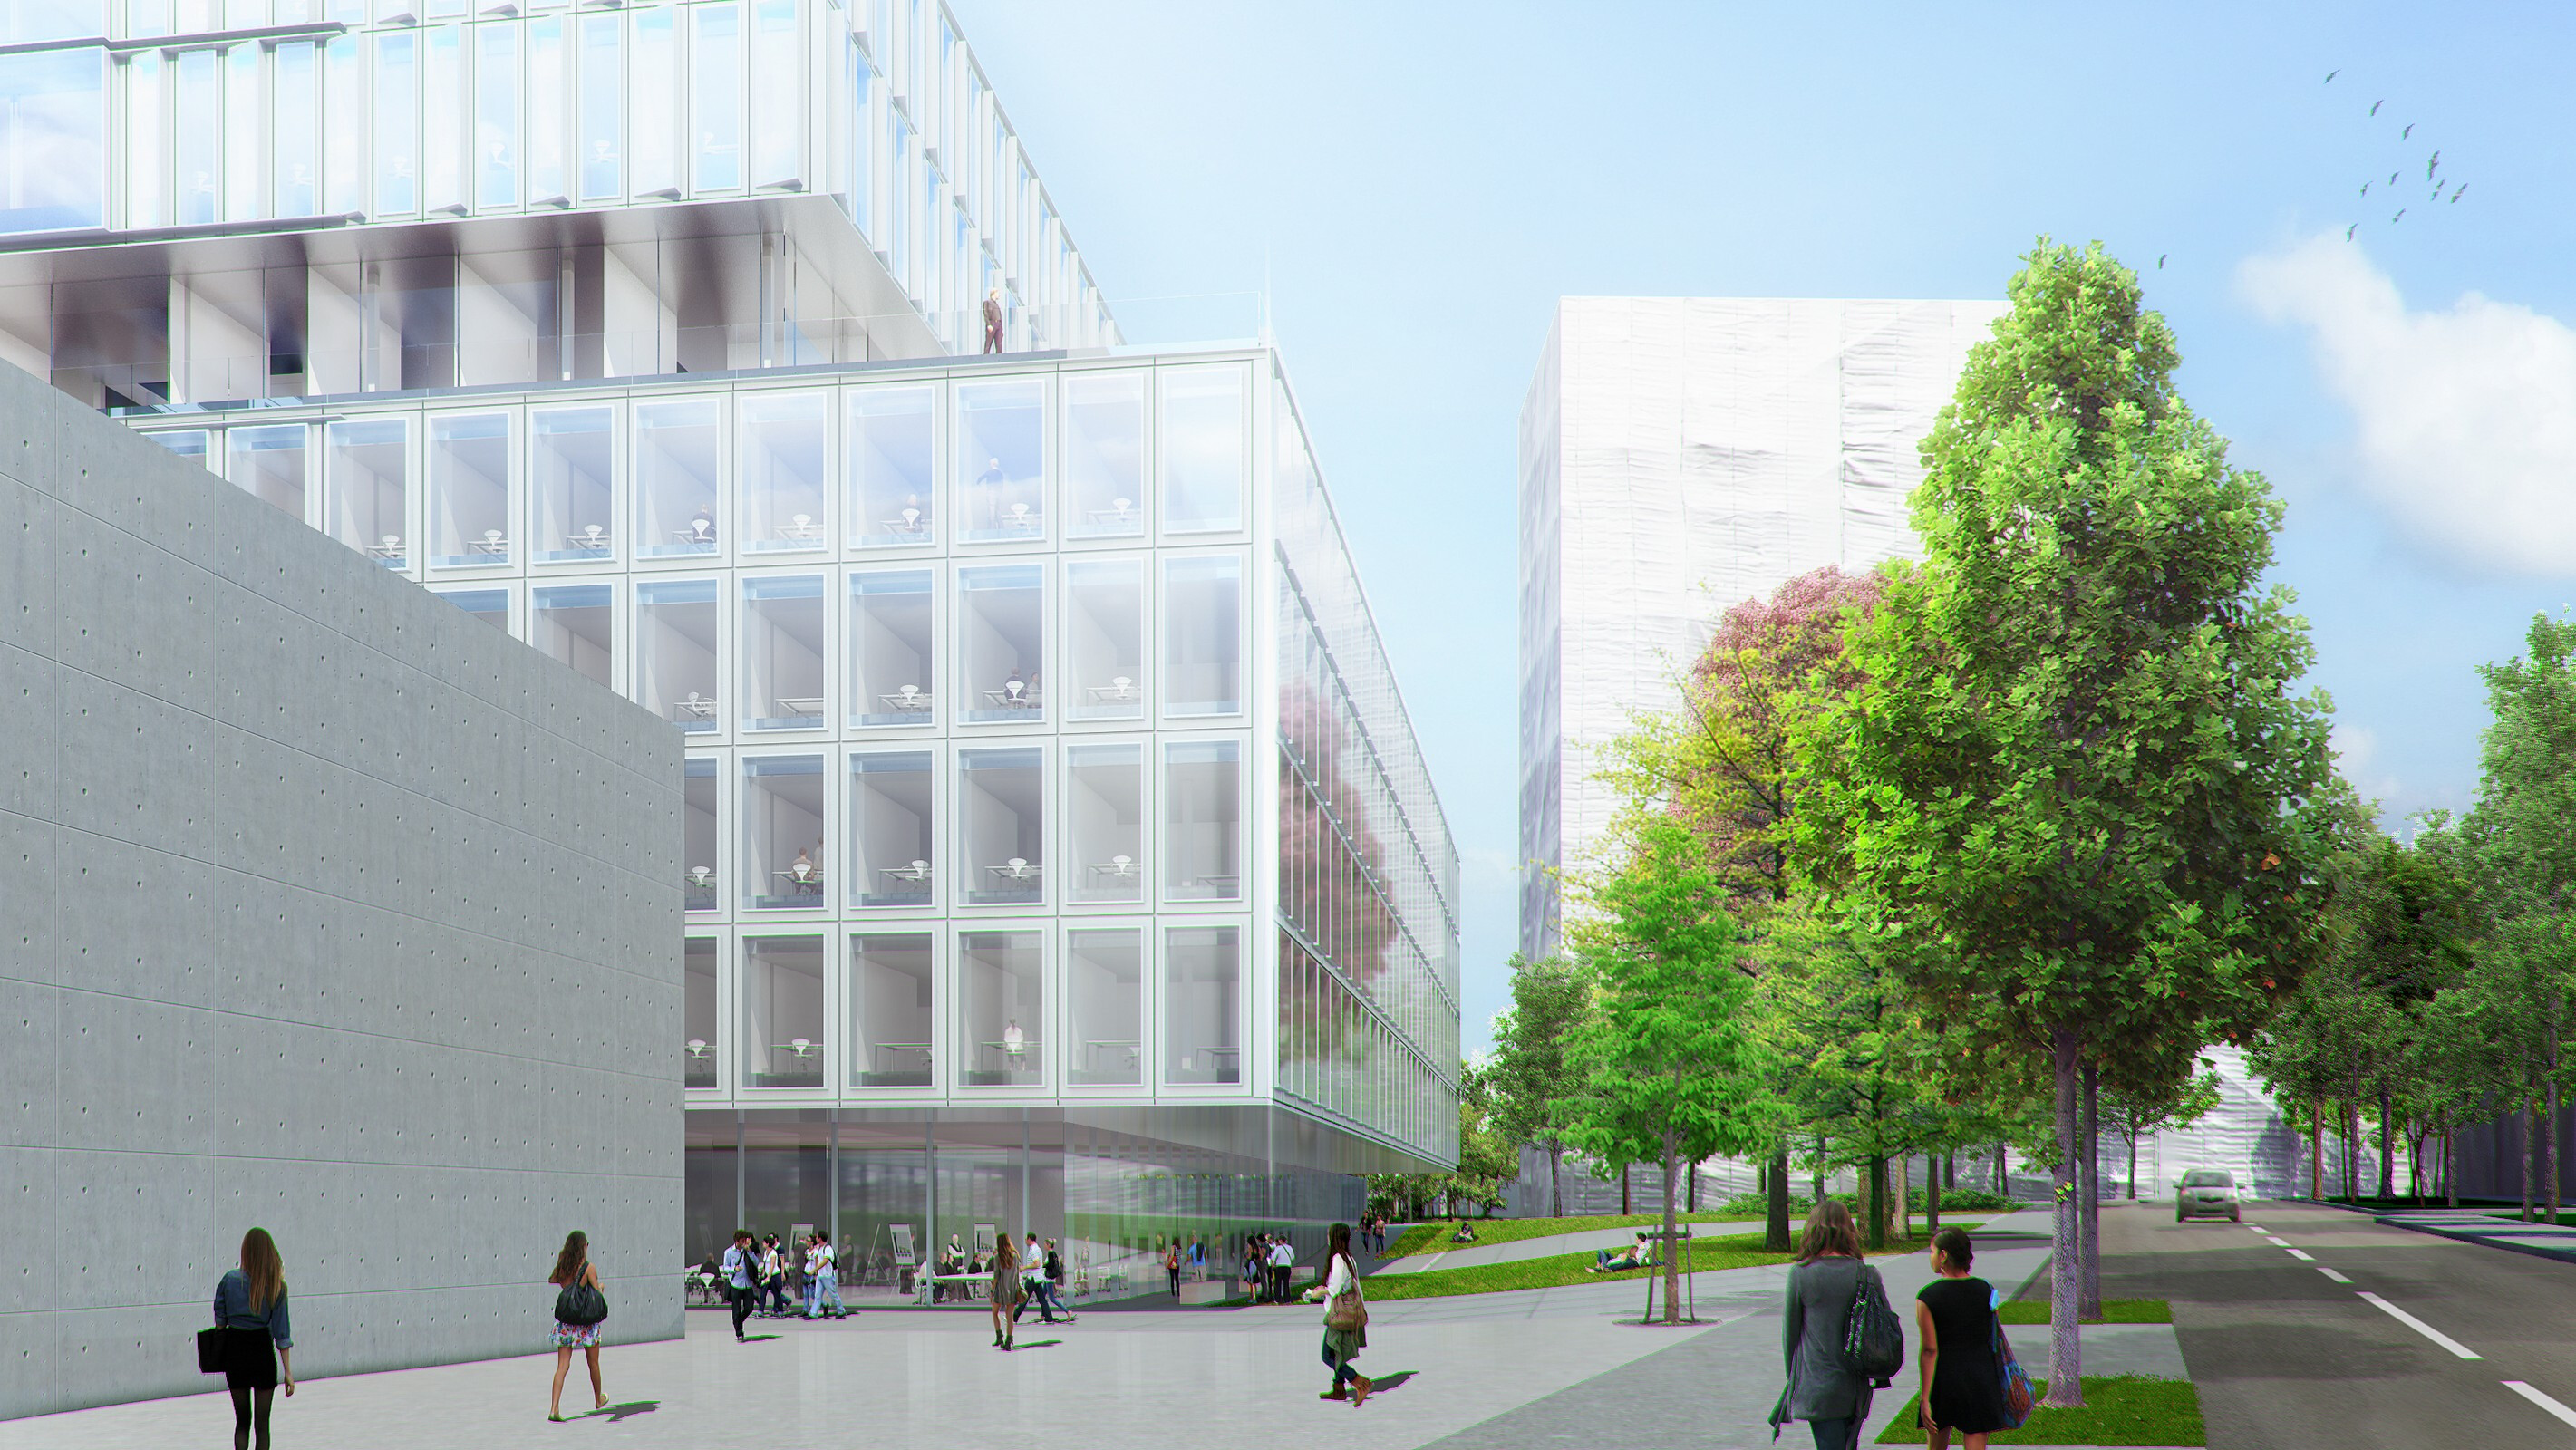 New ETHZ D-BSSE, laboratory and research building